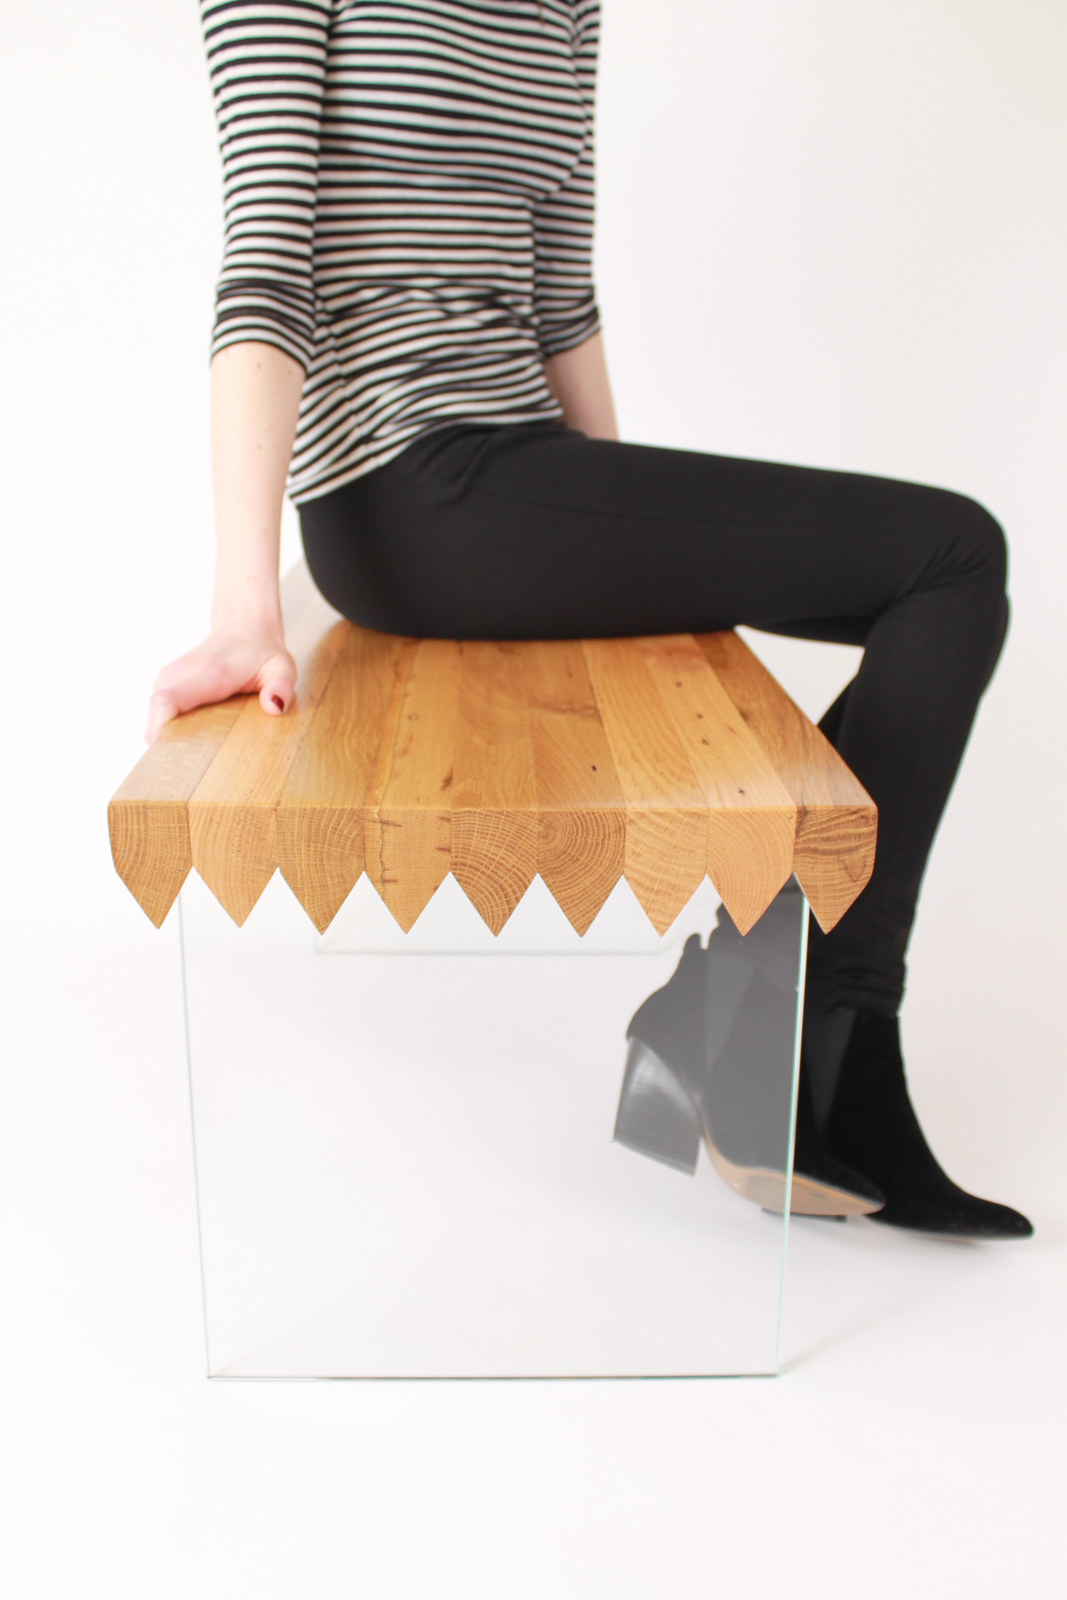 durodeco Sawtooth Bench In The Pursuit Reclaimed American Oak Wood Glass Brass